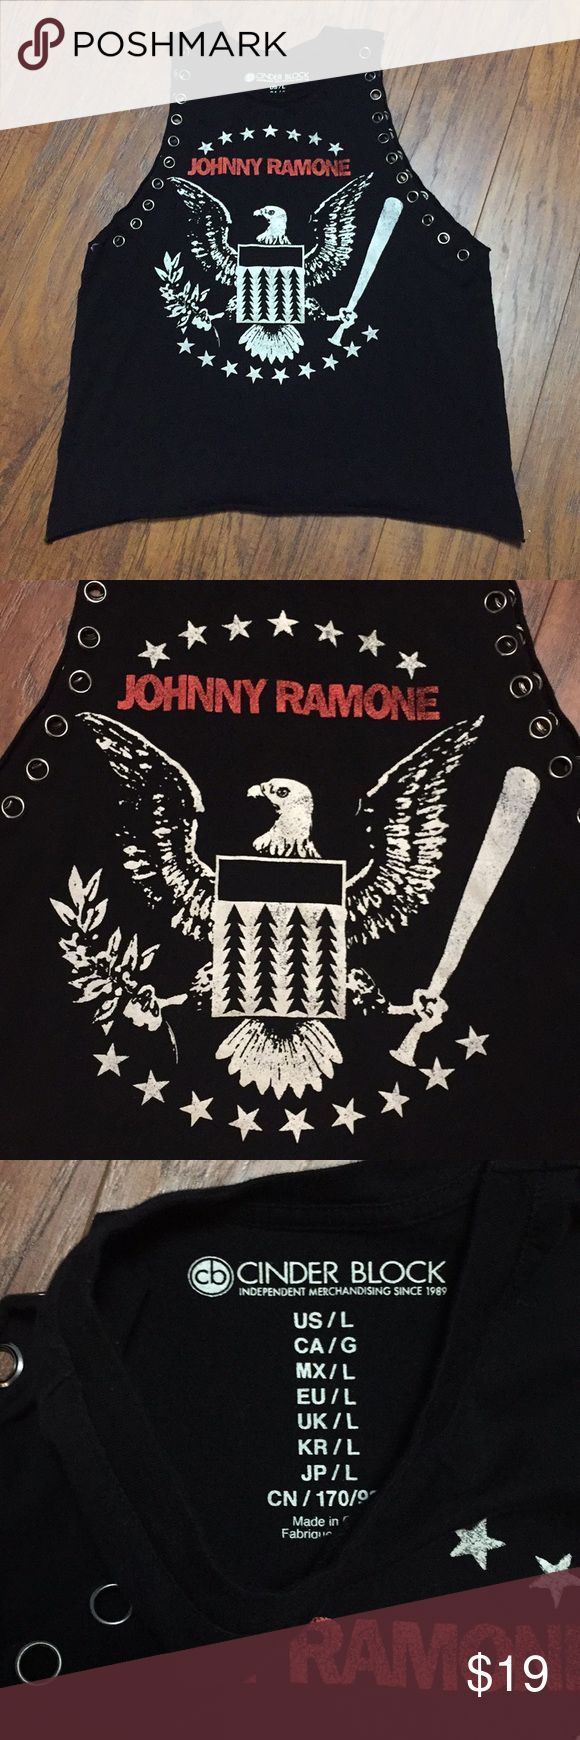 """Cinder Block Johnny Ramone Sleeveless shirt L Cinder Block Ramones Johnny Ramone muscle shirt tank top women's shirt with metal grommet detail.  Approx measurements are armpit to armpit 19"""" armhole is about 13"""" long.  At its narrowest point the shirt is 11"""" across length 24.5 Cinder Block Tops Muscle Tees"""